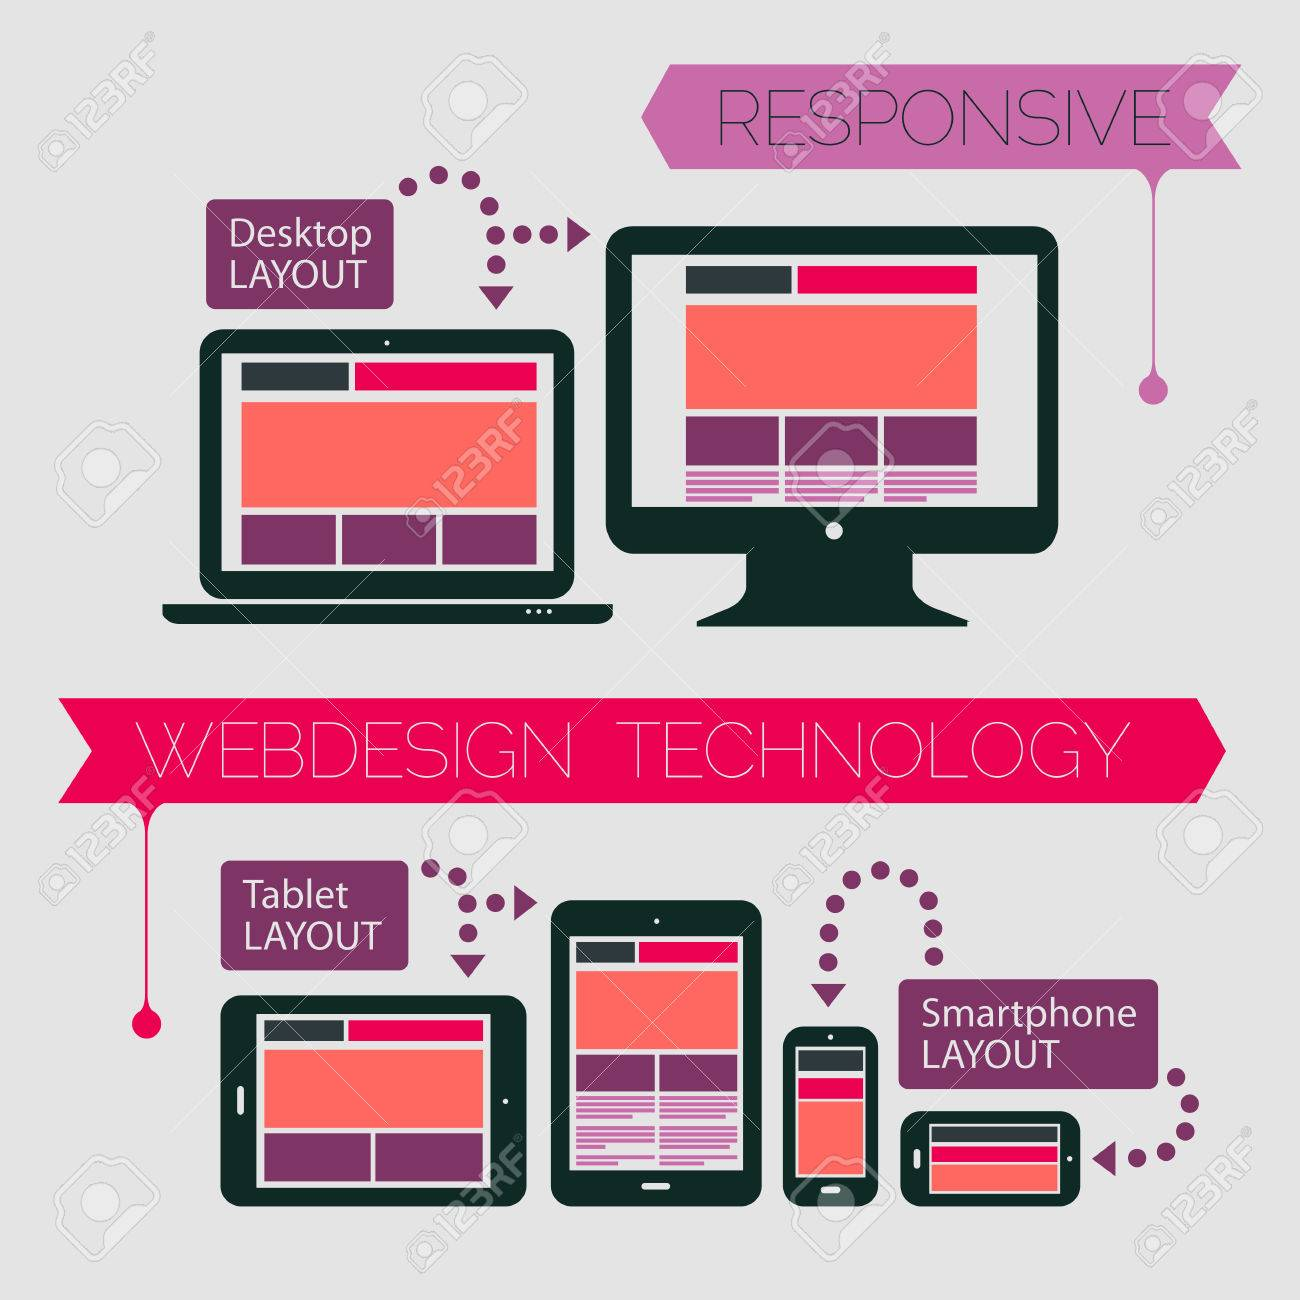 Responsive Webdesign Technology Page Design Template On Light